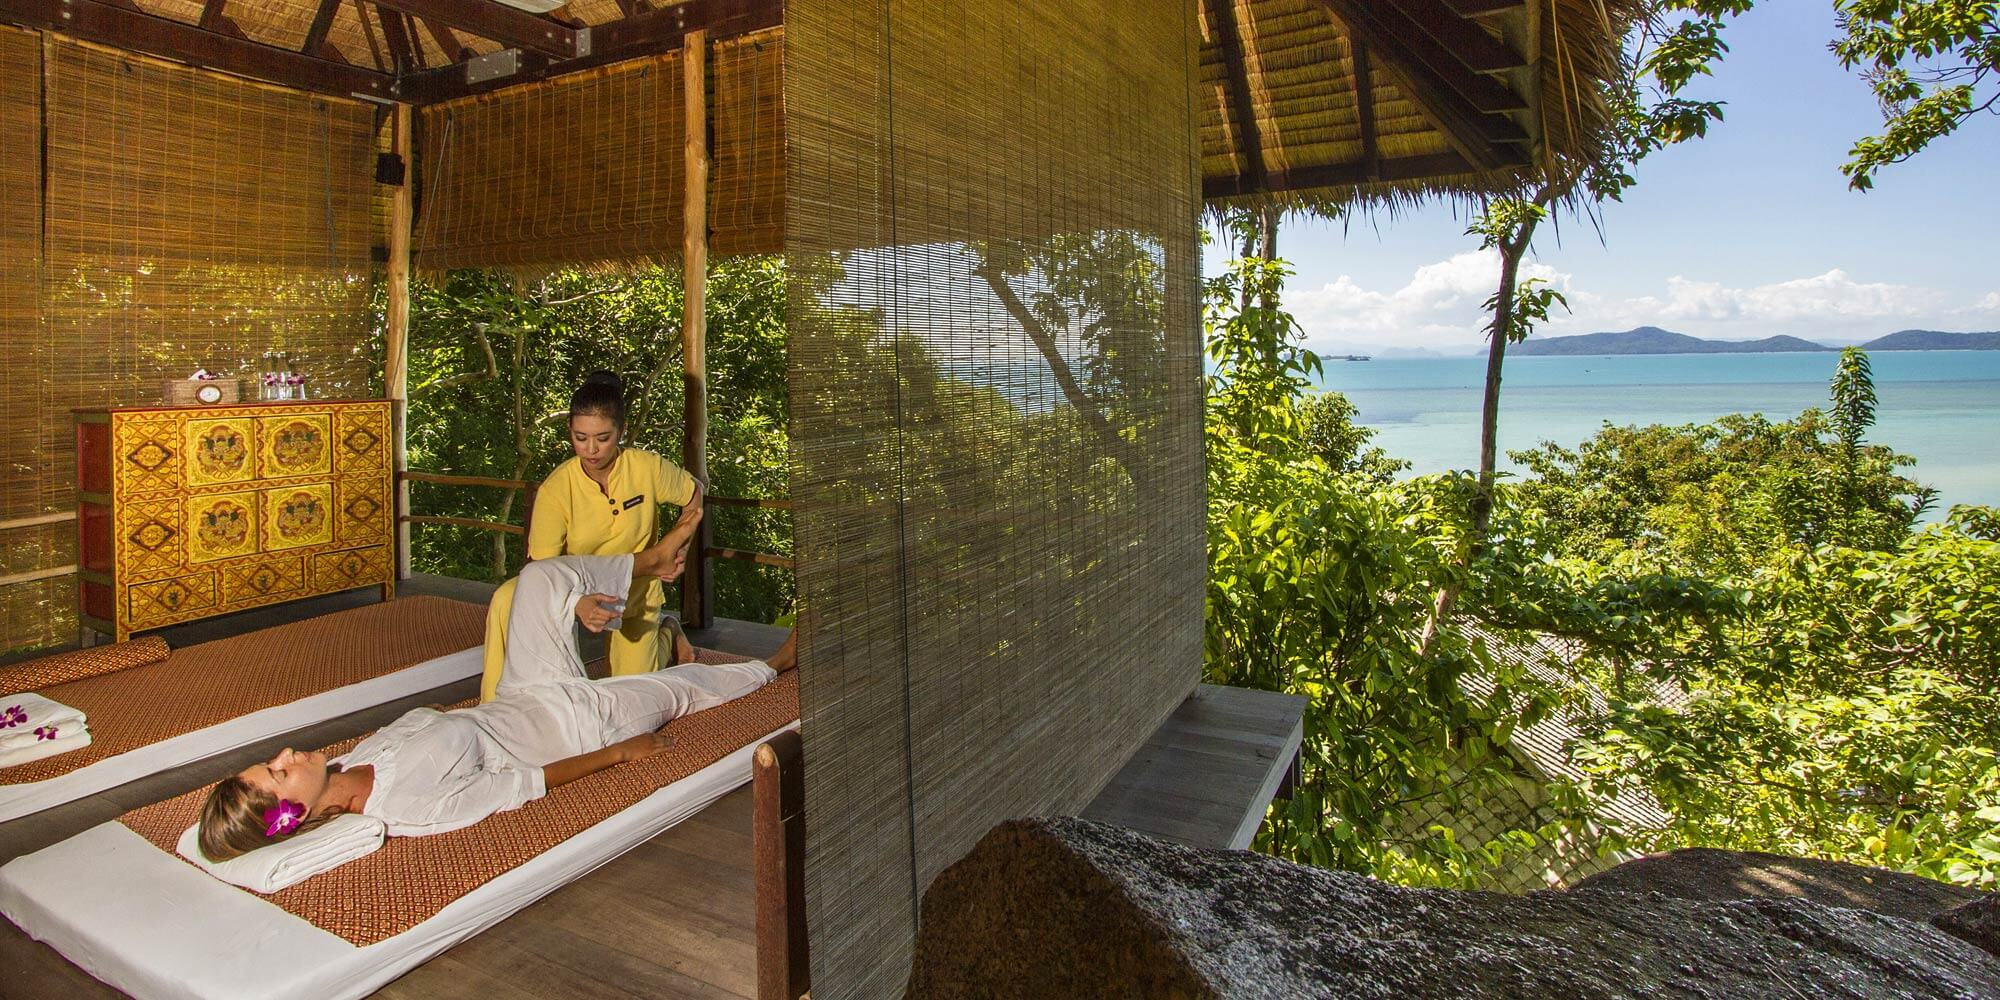 Kamalaya Koh Samui Thailand Hotel Reviews - Kamalaya-koh-samui-luxury-spa-resort-in-thailand